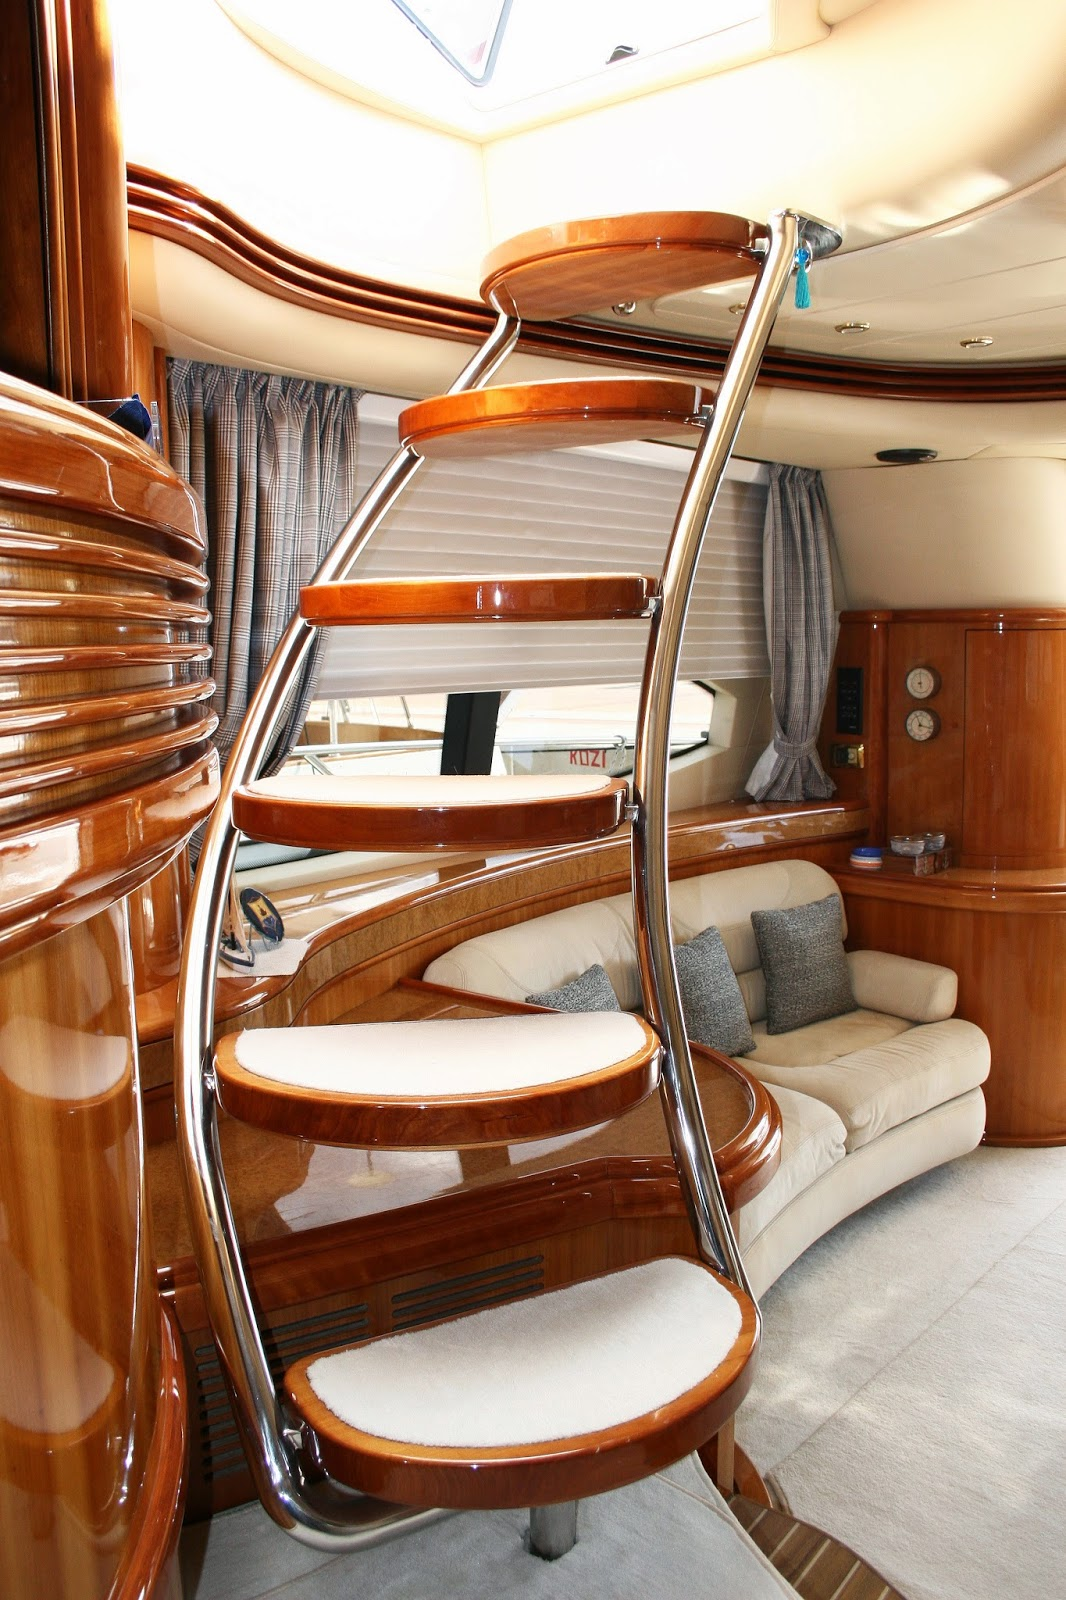 amalthia ii sleeps 8 guests in 2 double cabins and 2 twins one full width amid ship master cabin one vip double cabin both with queen sized beds and wide